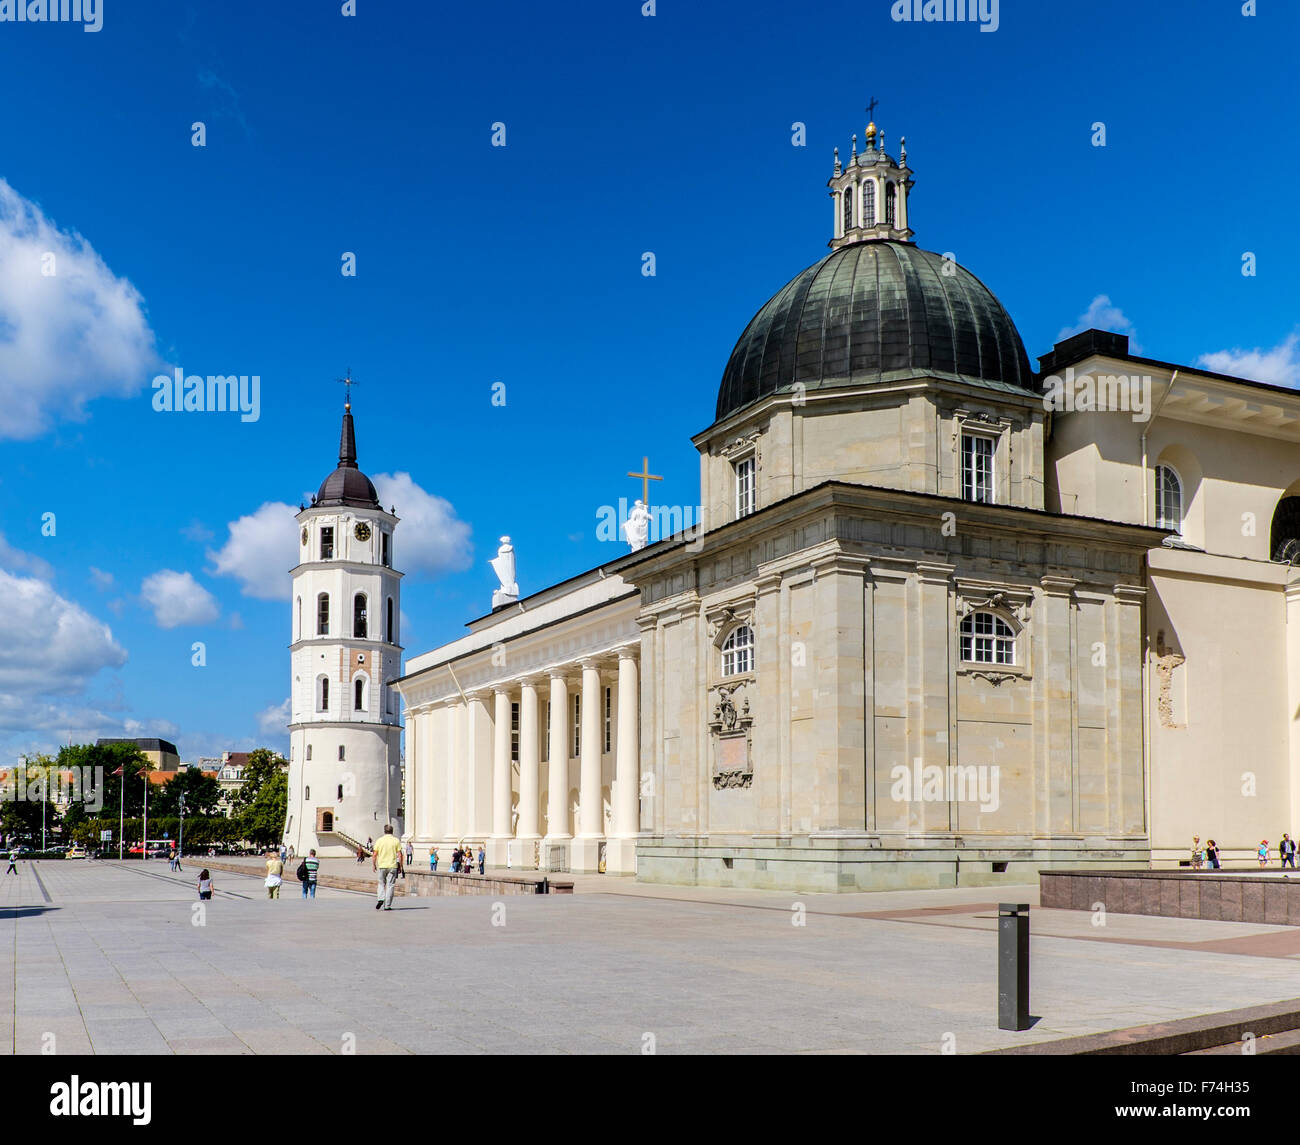 Cathedral with Bell Tower in Vilnius, Lithuania - Stock Image